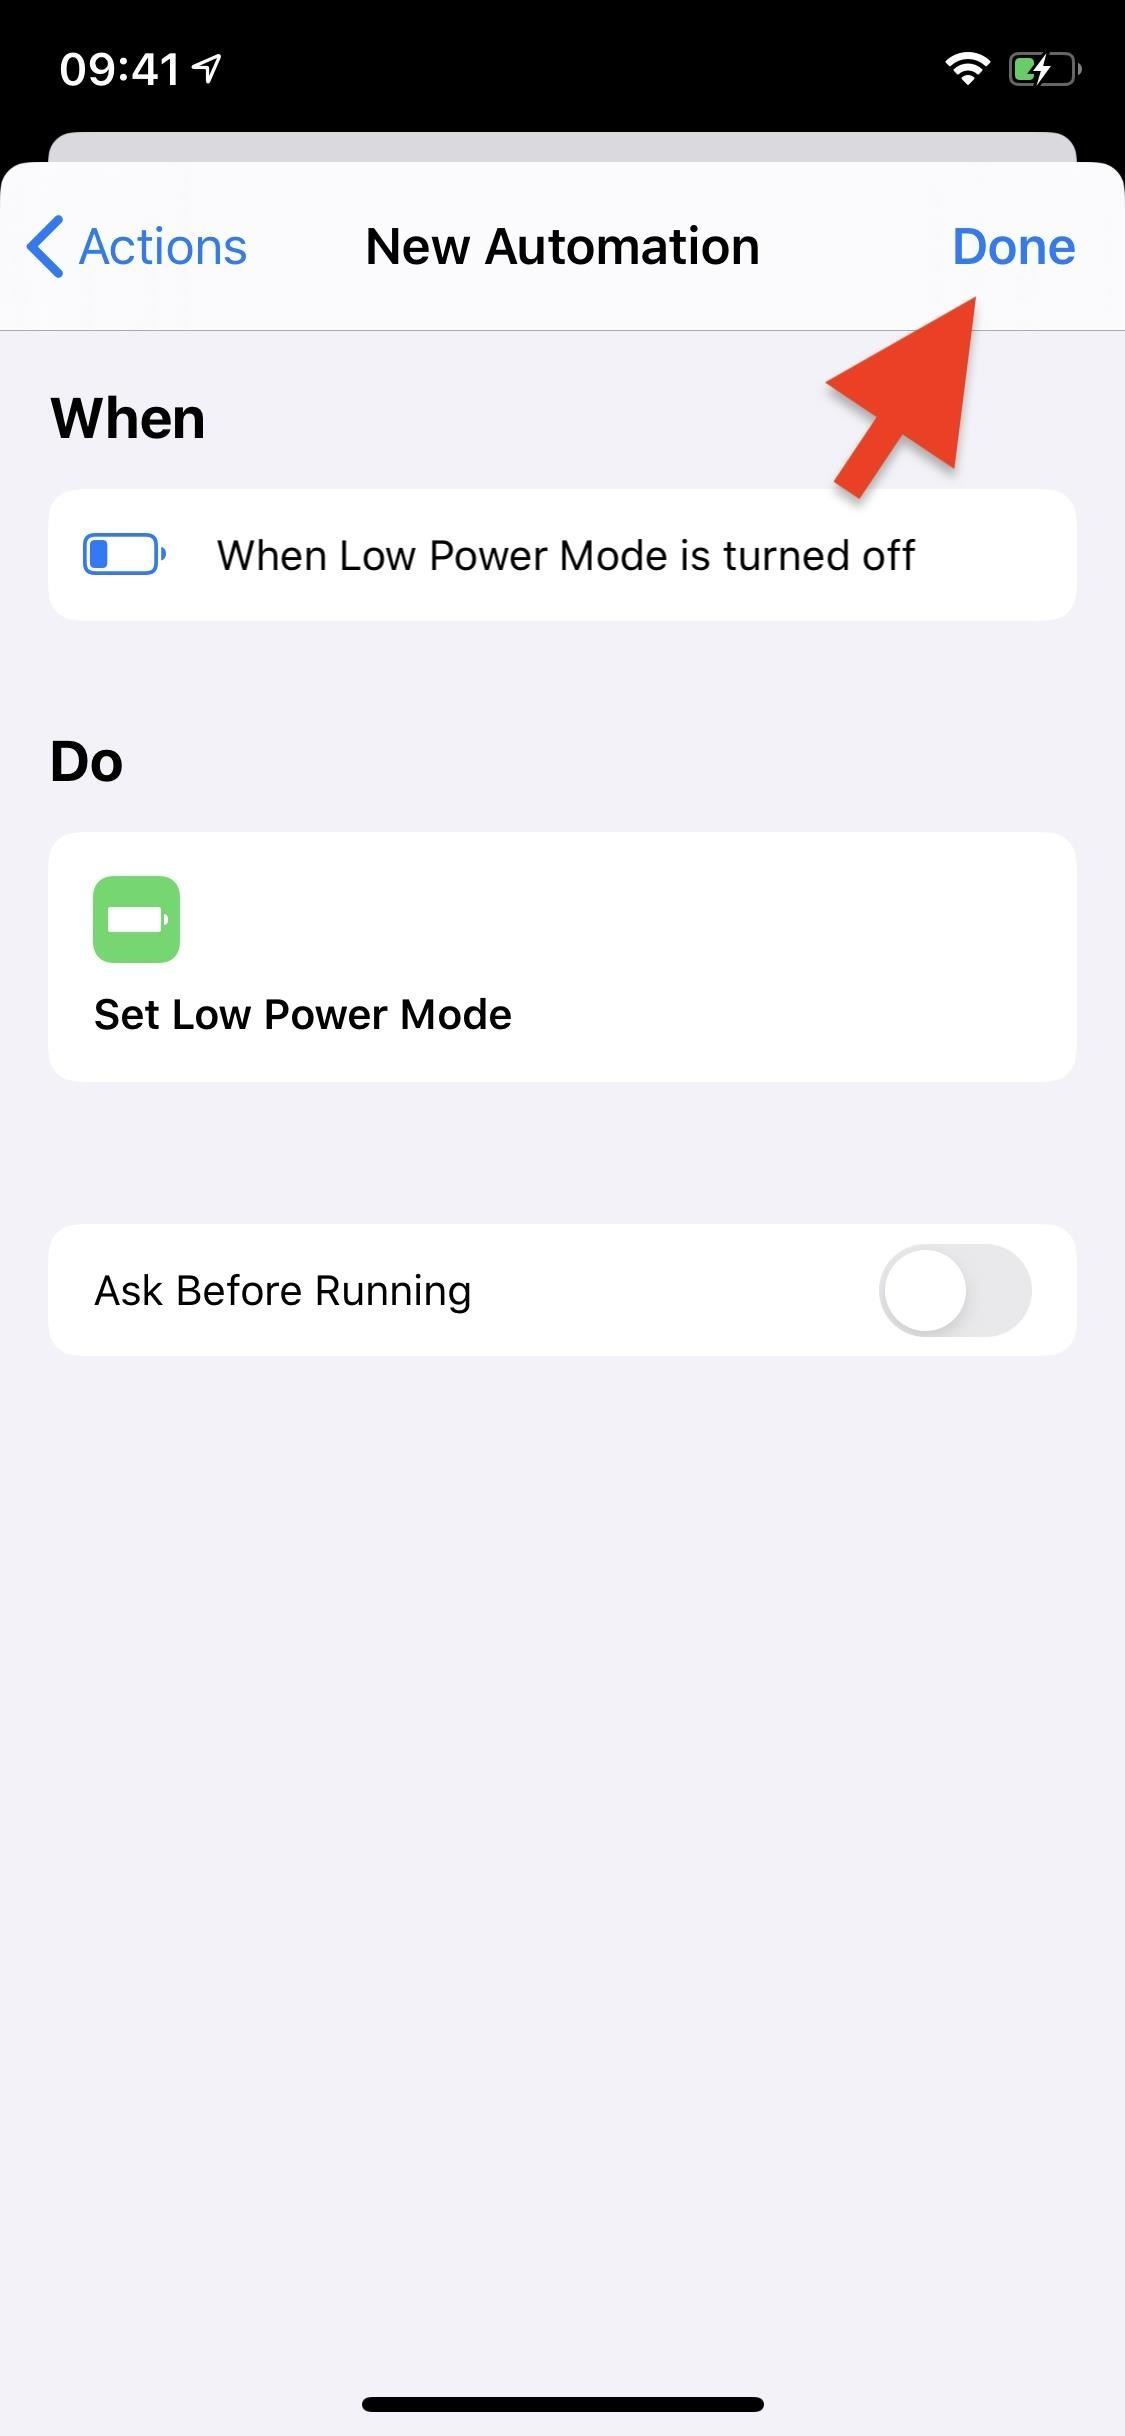 How to Keep Low Power Mode Enabled Indefinitely on Your iPhone